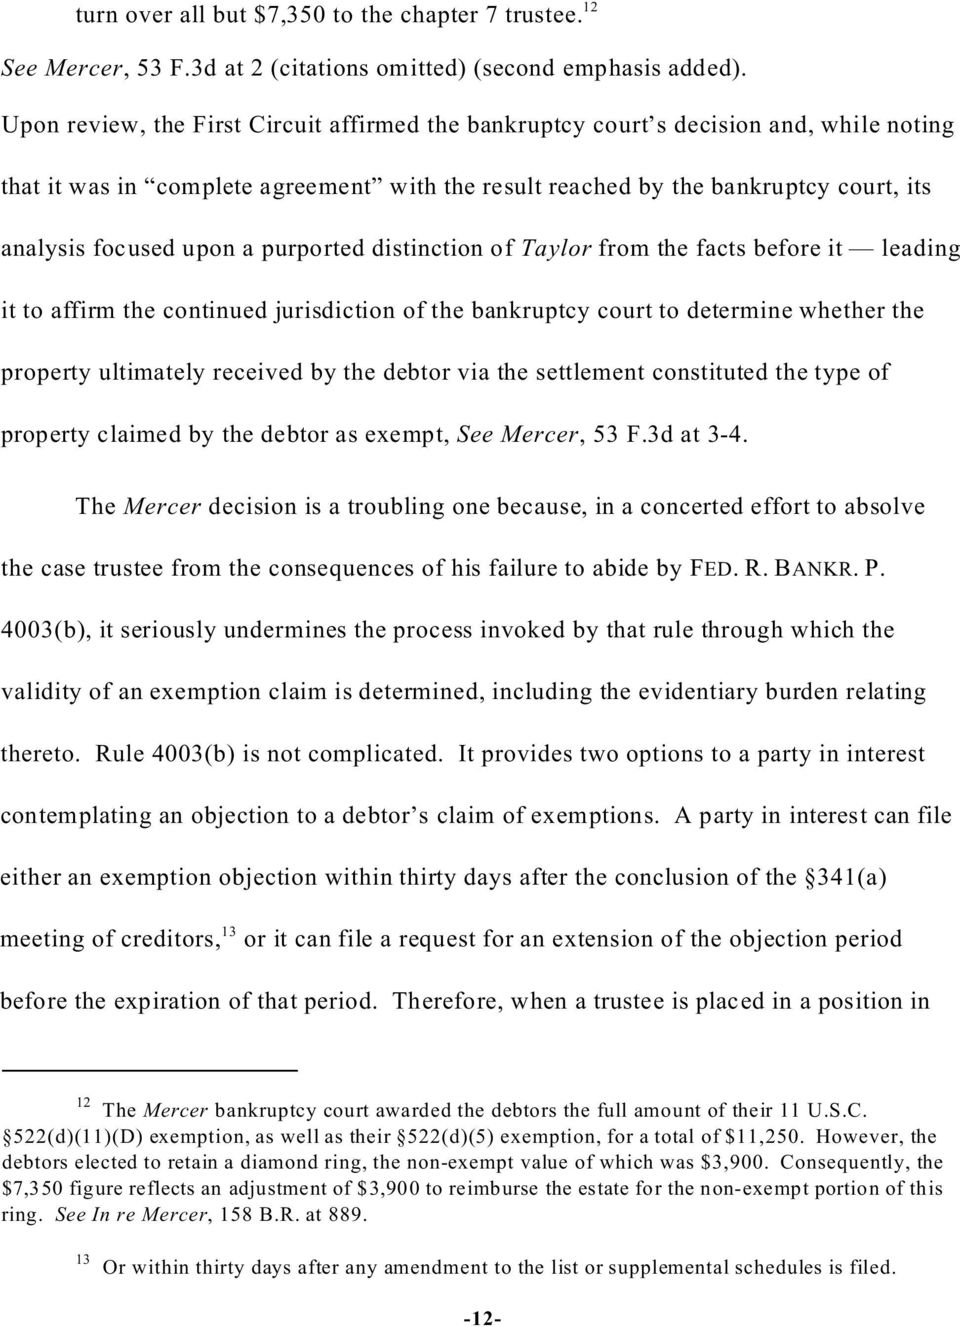 a purported distinction of Taylor from the facts before it leading it to affirm the continued jurisdiction of the bankruptcy court to determine whether the property ultimately received by the debtor